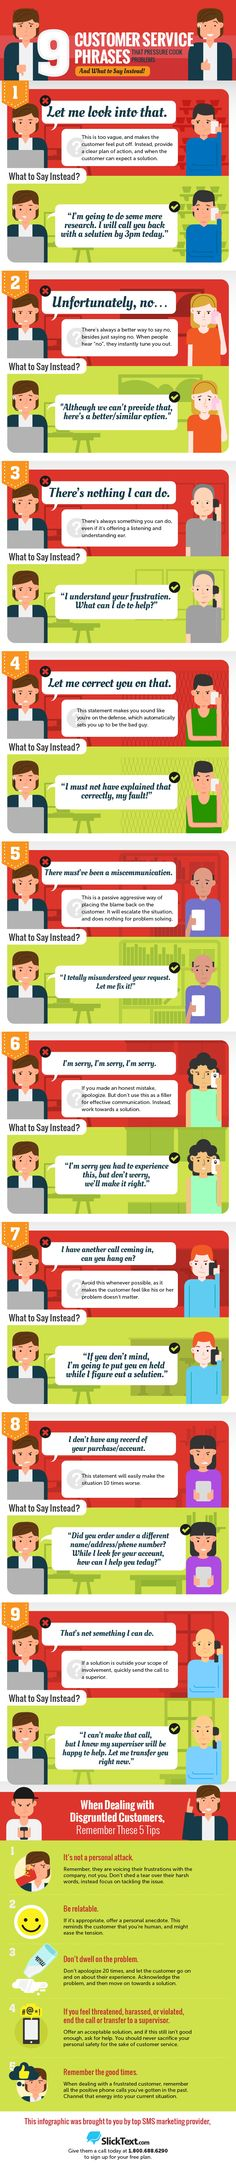 9 Customer Service Phrases that Pressure Cook Problems and What to Say Instead #infographic #Business #CustomerService